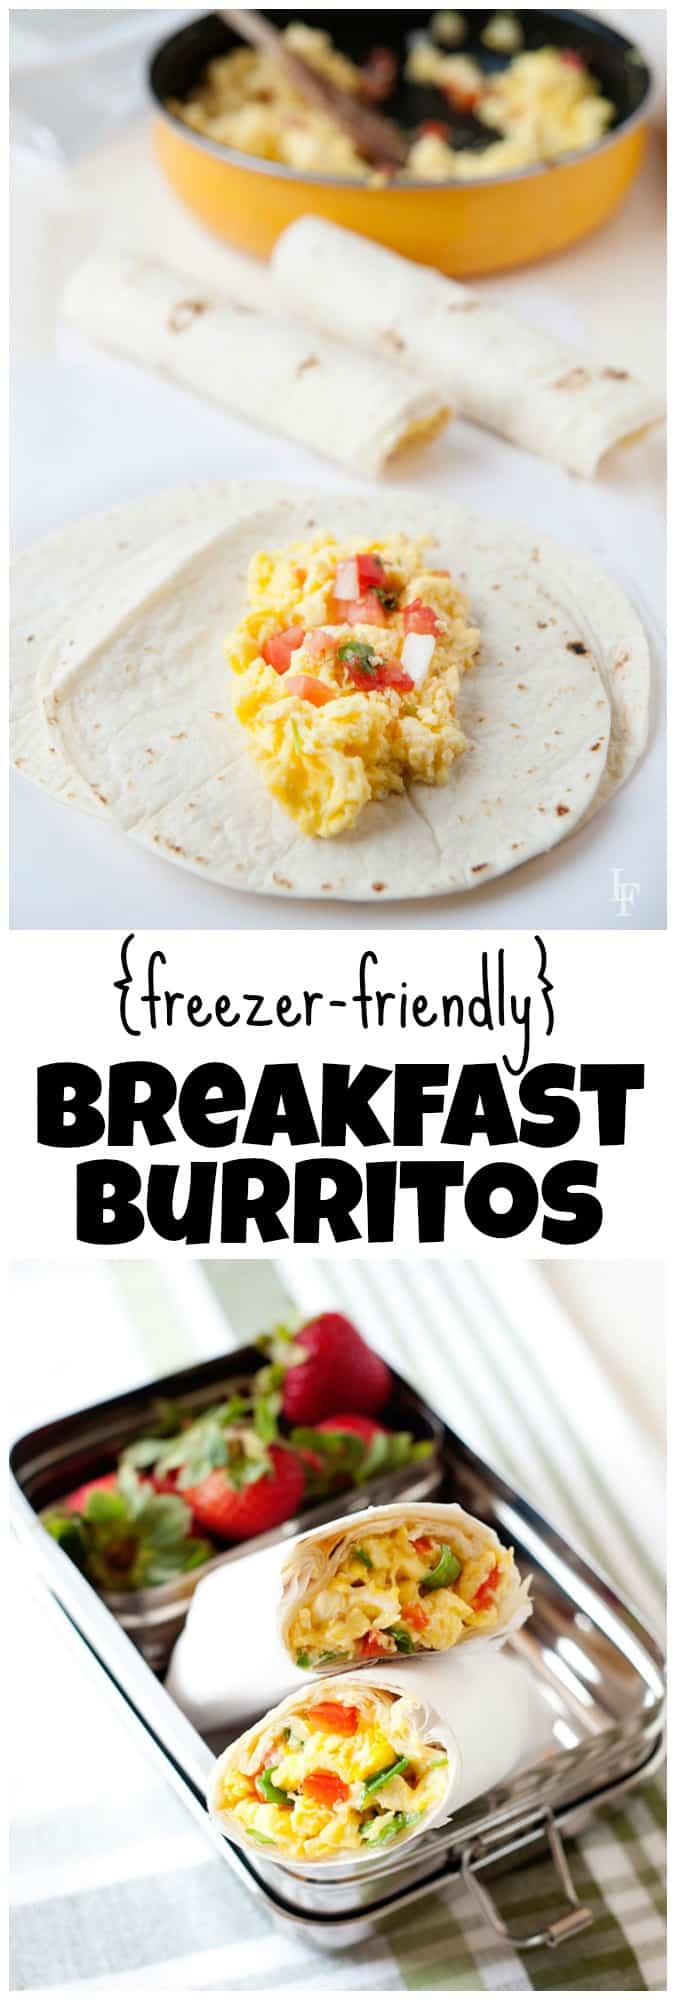 Are you looking for a convenient protein-rich portable breakfast? These make-ahead breakfast burritos are freezer friendly and easy to make.